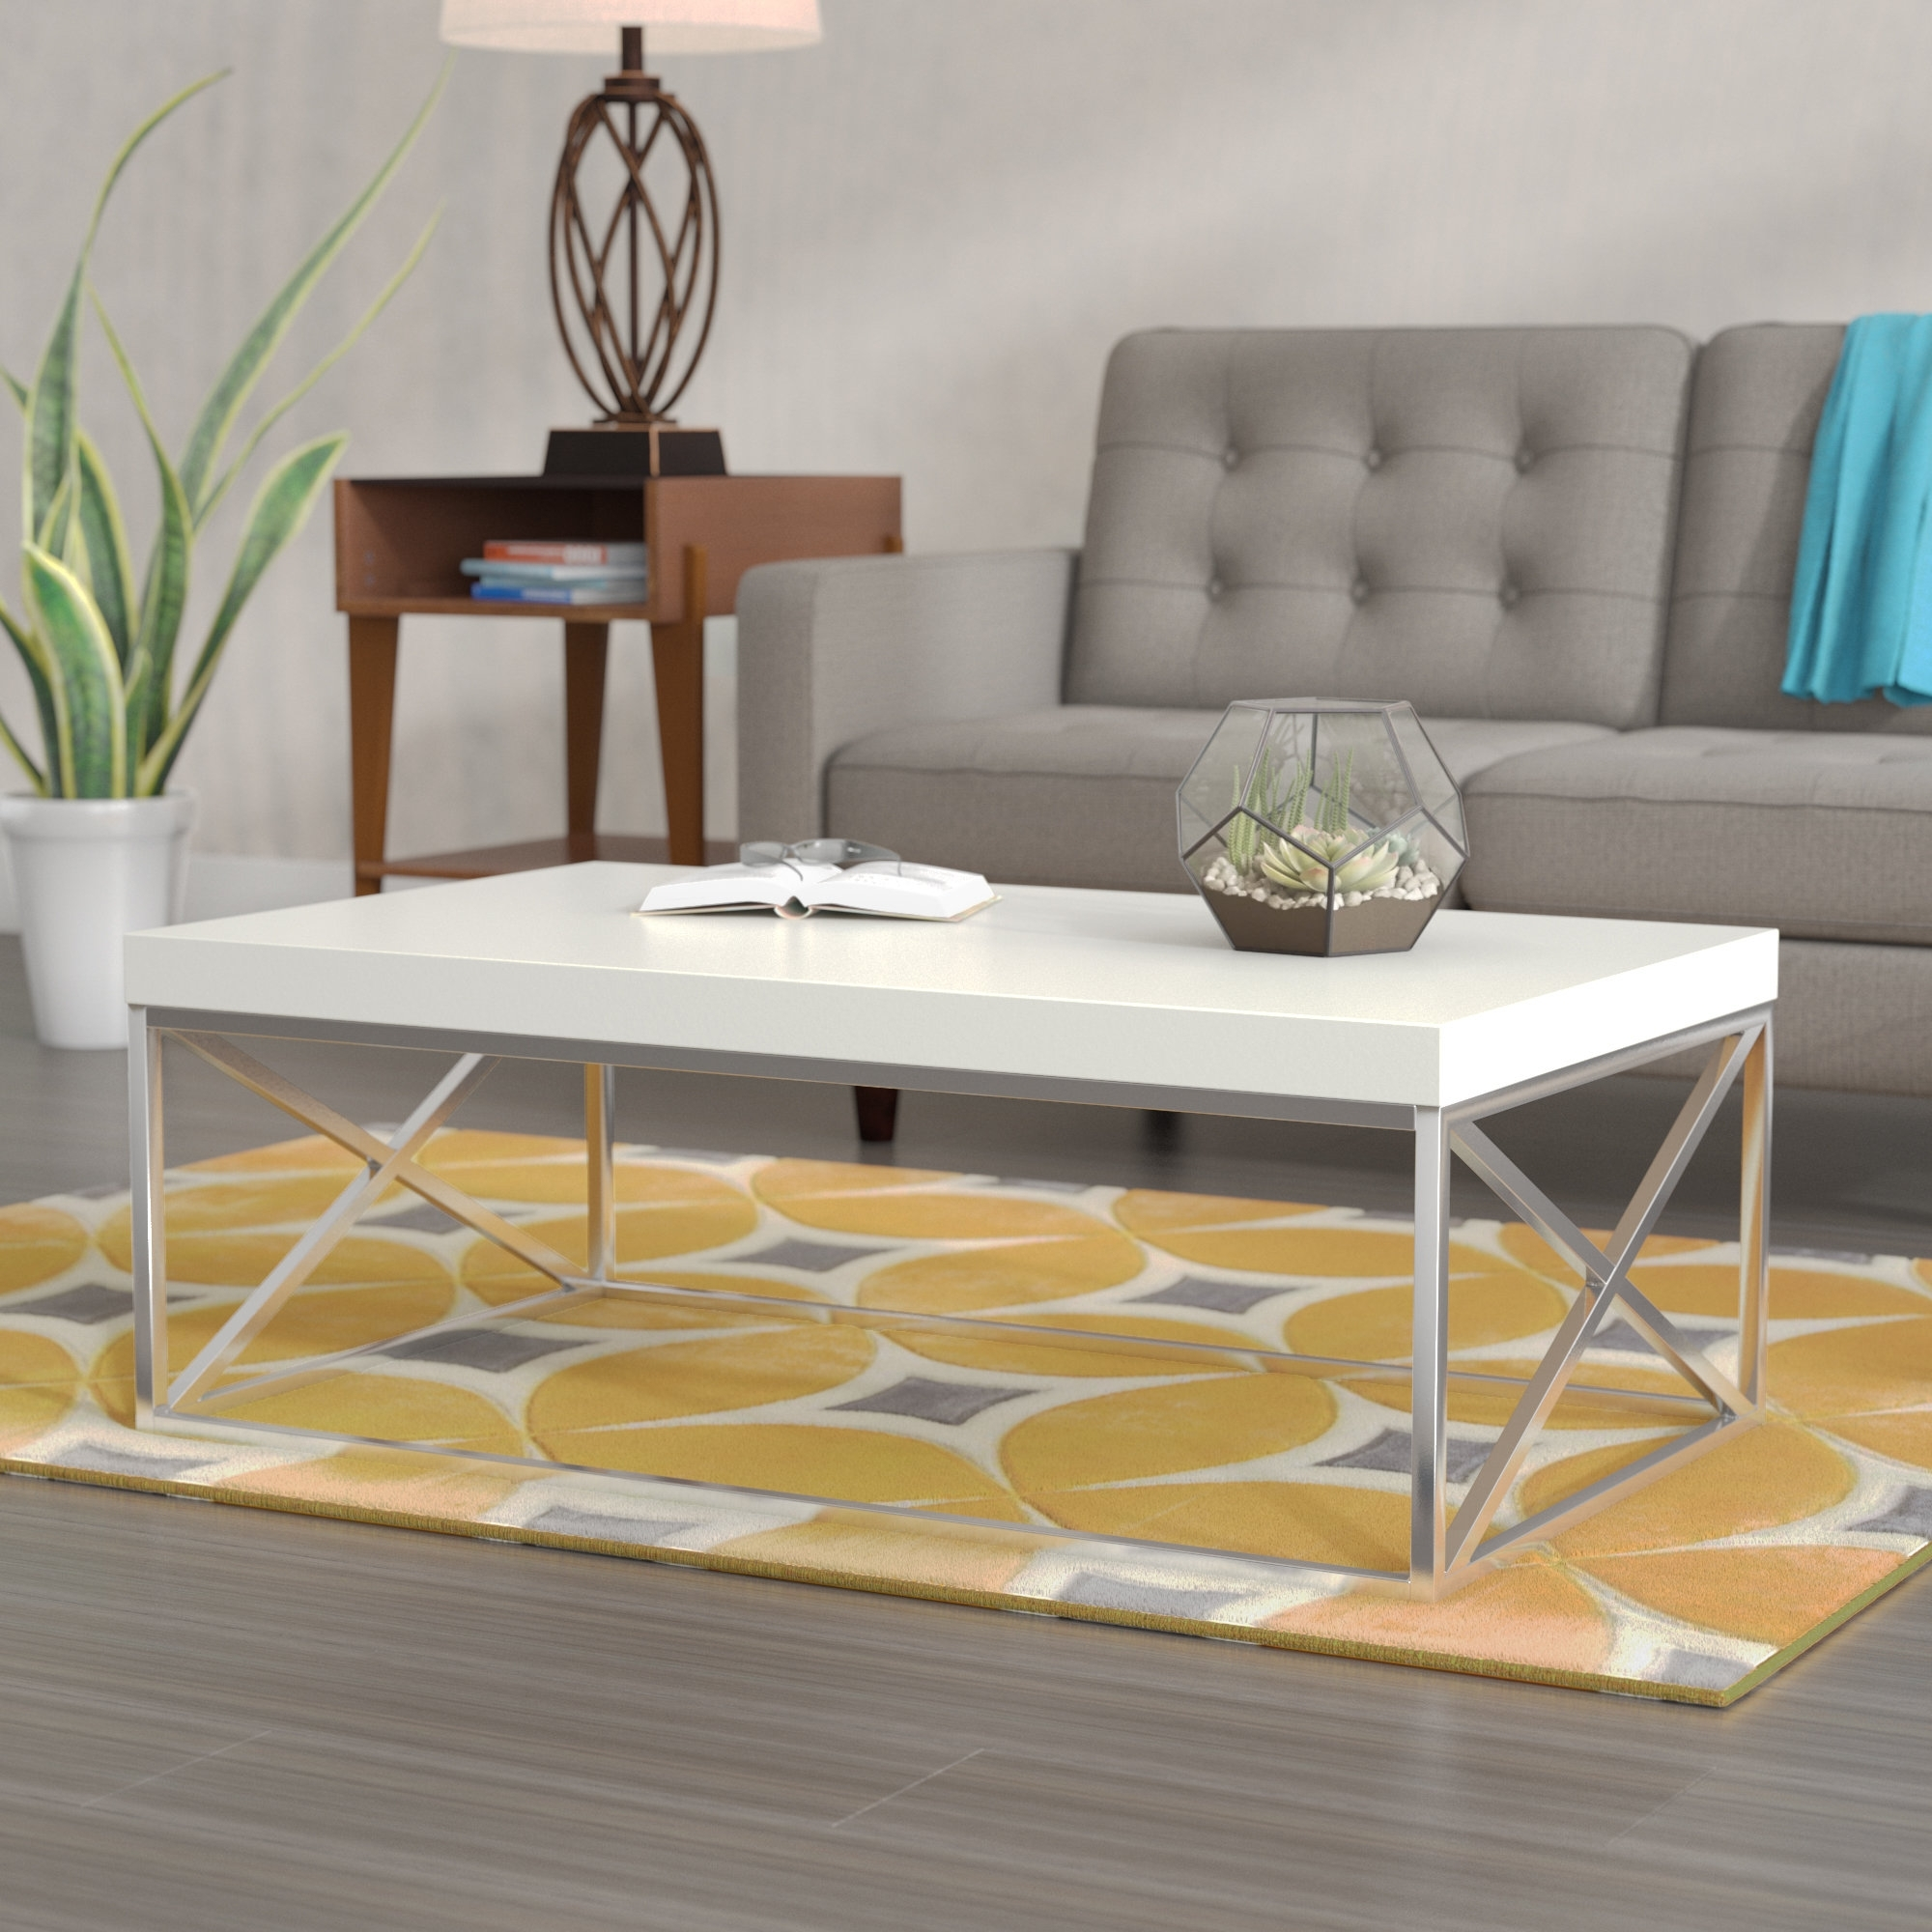 Wayfair Intended For Widely Used Stack Hi Gloss Wood Coffee Tables (View 17 of 20)